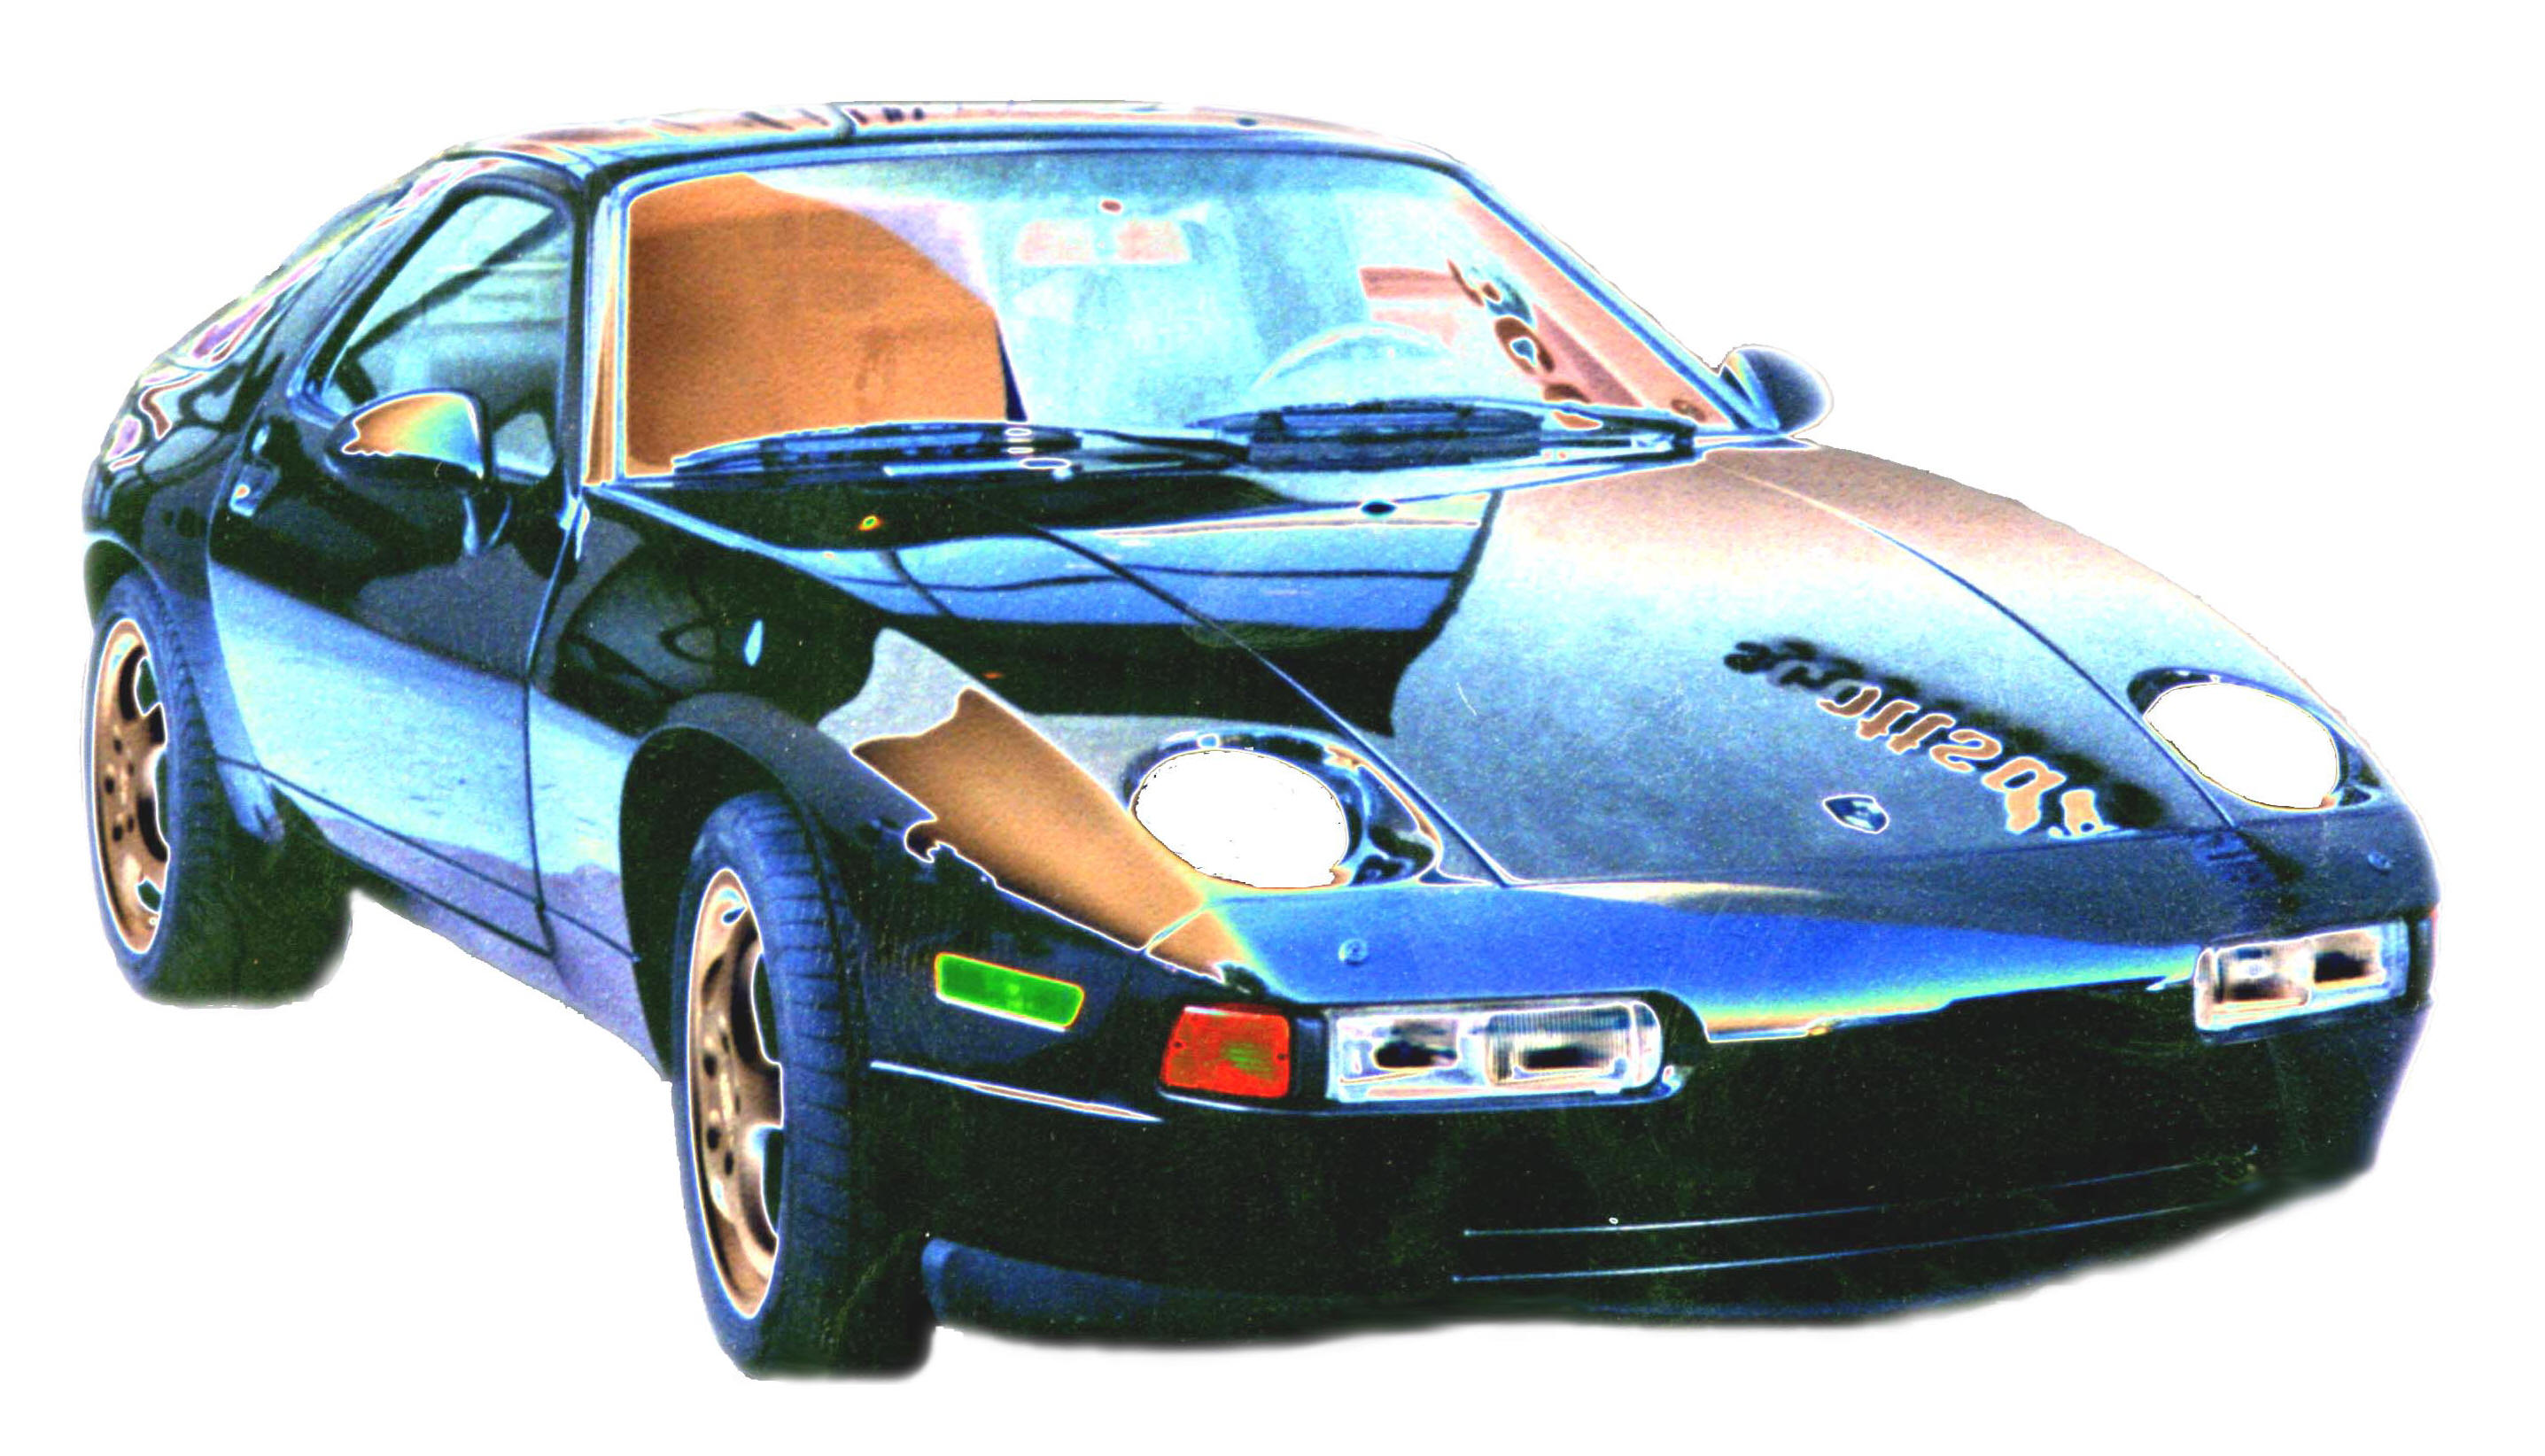 Alan 928 GTS 8h wiring diag primer 1980 porsche 928 wiring diagram at nearapp.co